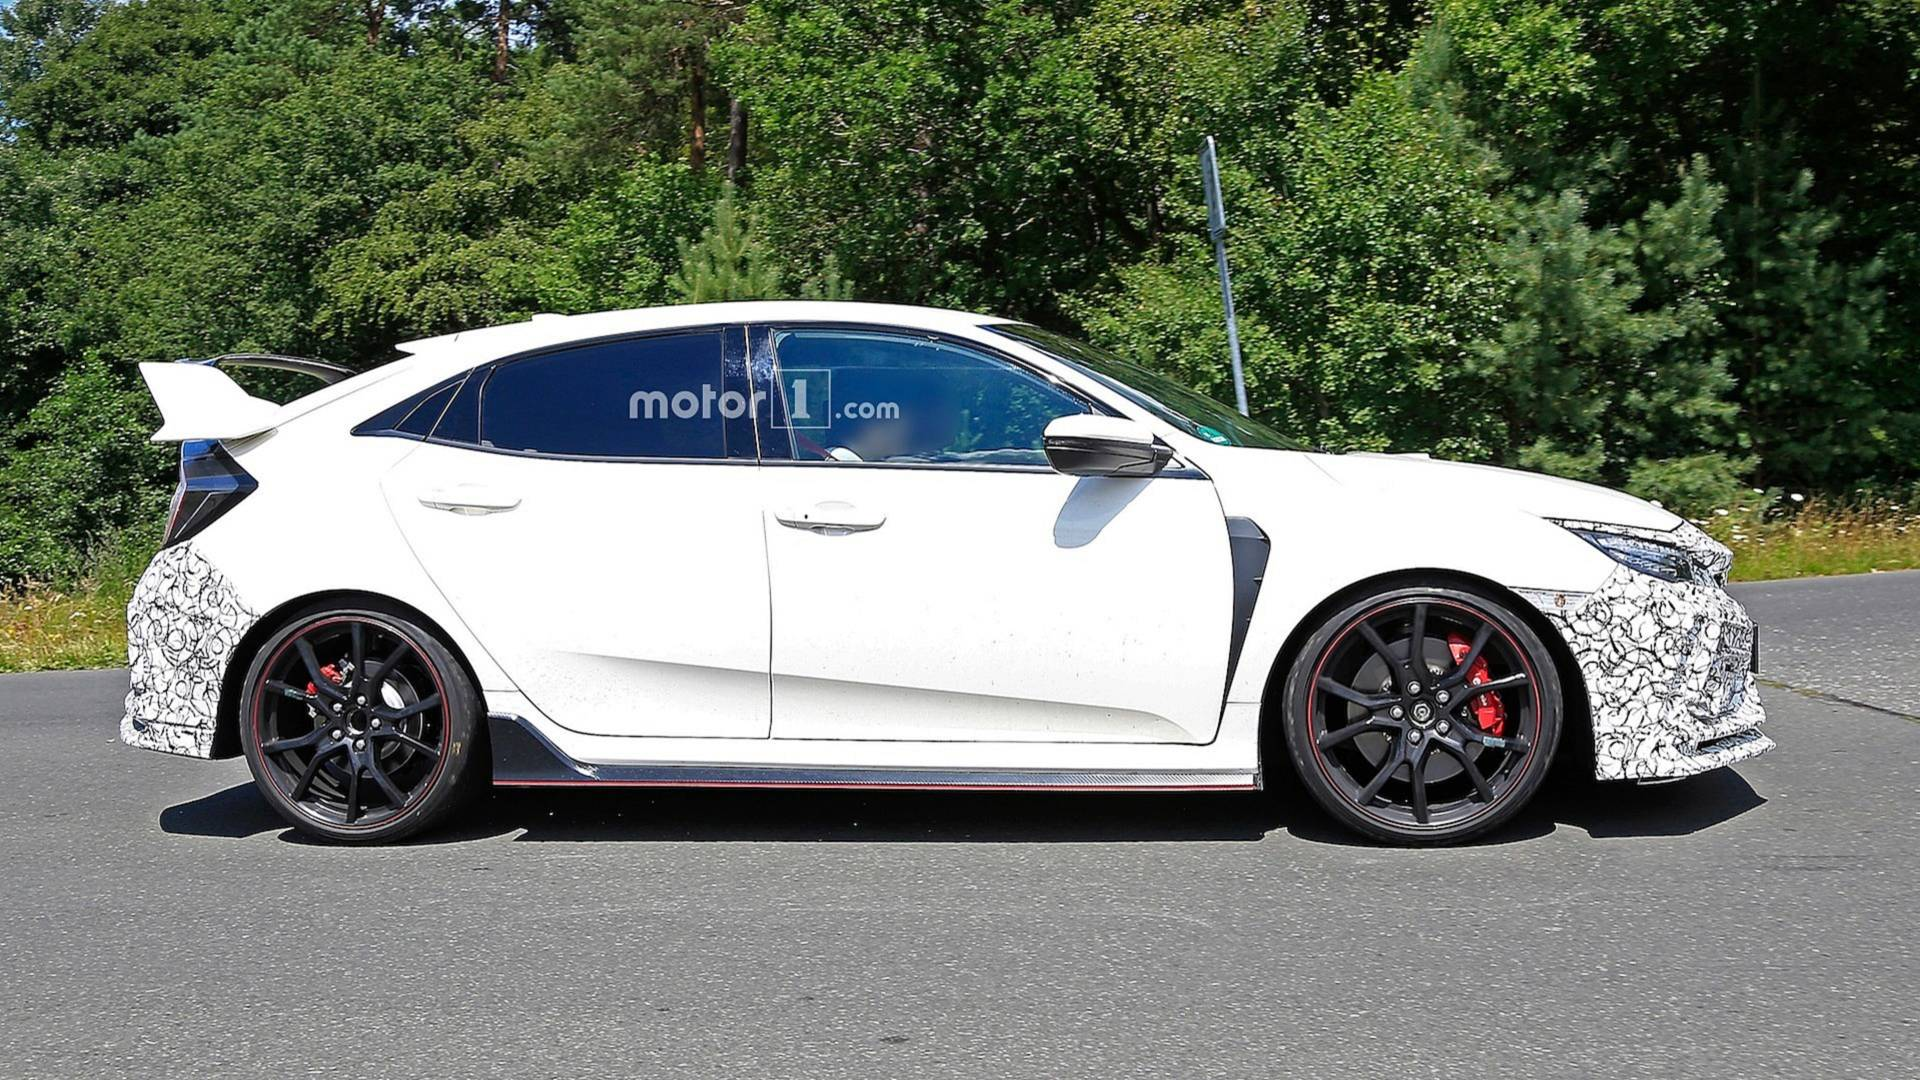 honda civic 2019 type r spy shots (6)